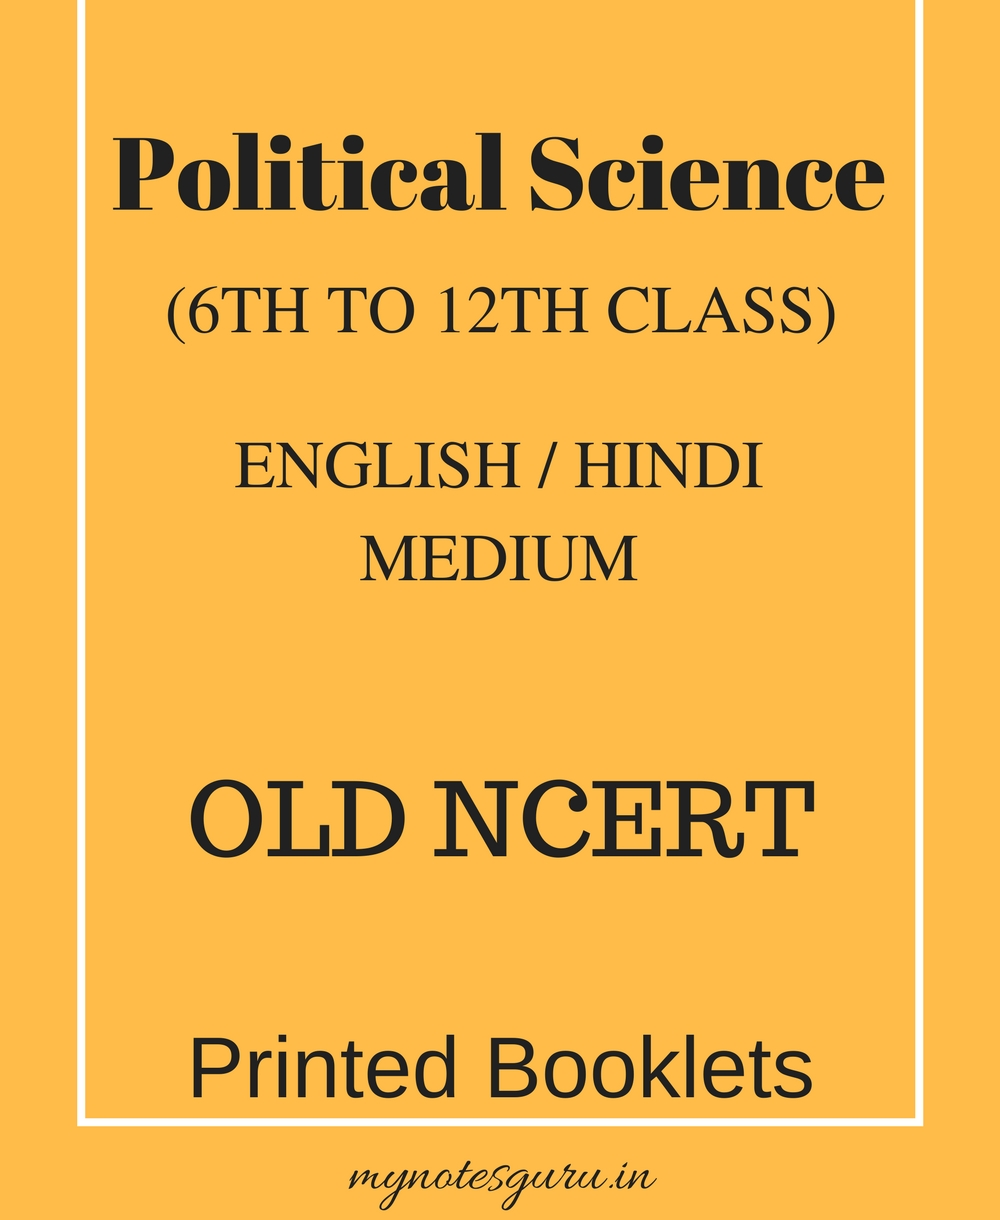 Political Science (6th to 12th class) English / Hindi - Political Science -  Old NCERT - Printed Booklets